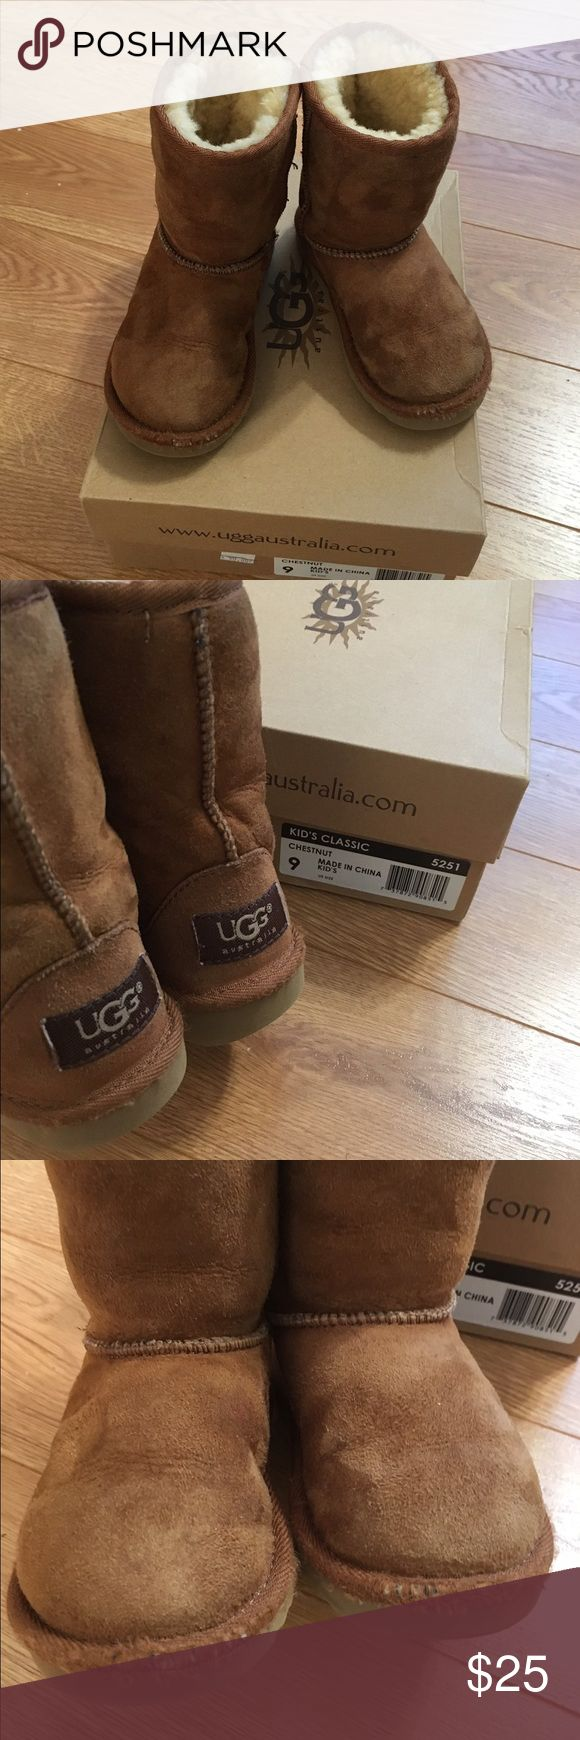 Toddler Ugg Chestnut Boots GUC Toddler Ugg Chestnut Boots. Worn several times by my son. Smoke and pet free home. No holes or tears. Slightly frayed at seams of the tops of toes (see pictures) other than that great condition. Thanks for looking! UGG Shoes Boots